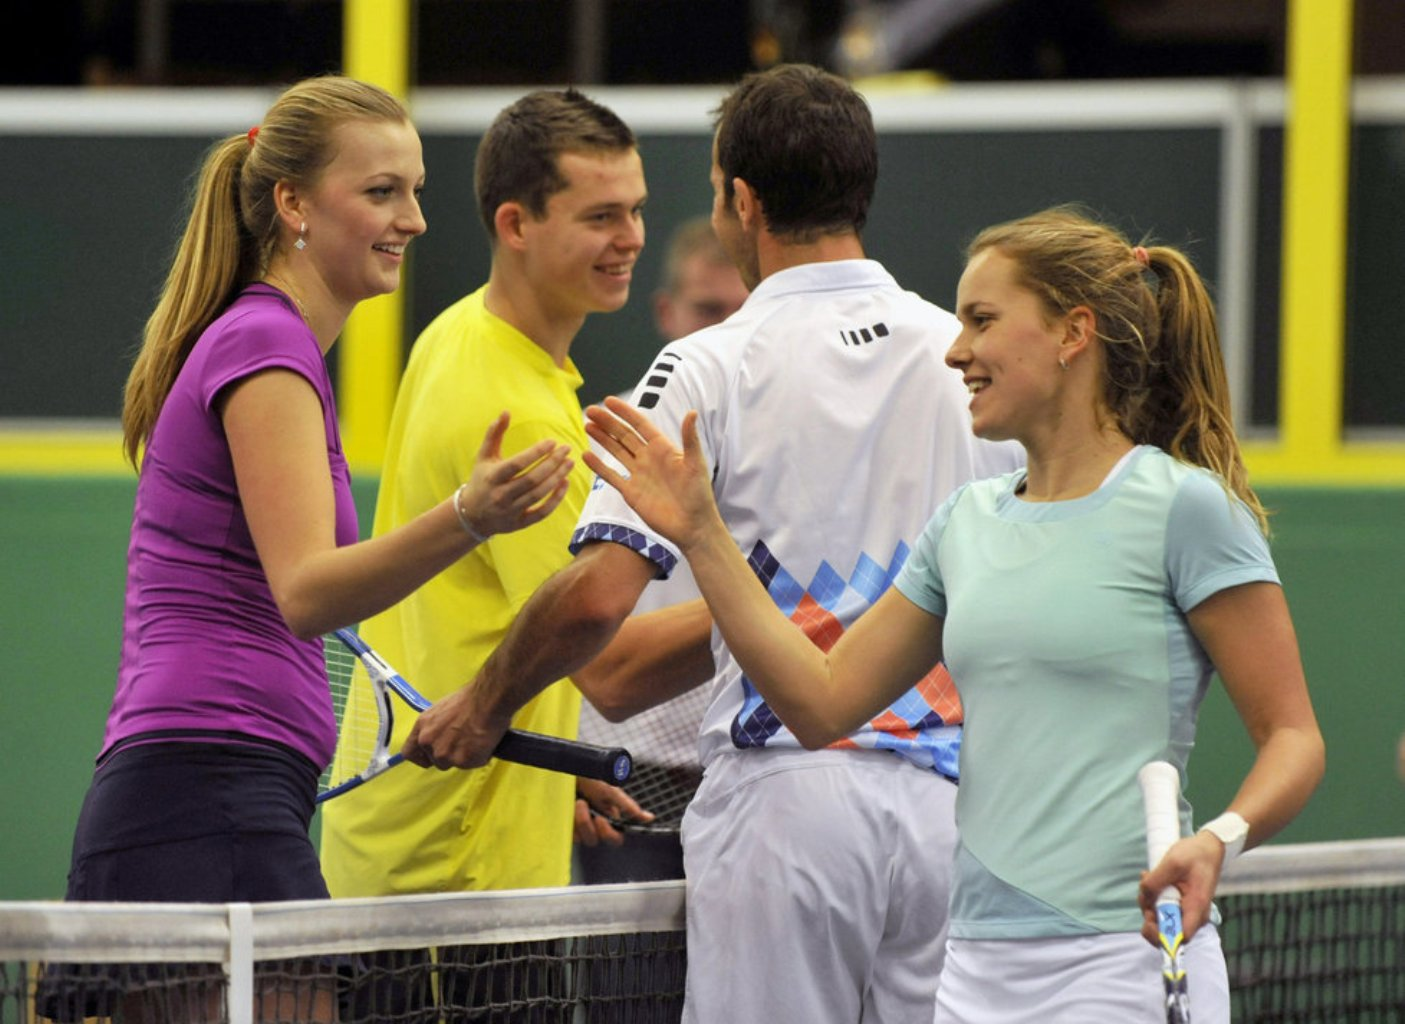 Kvitova and Pavlasek टेनिस exhibition 2